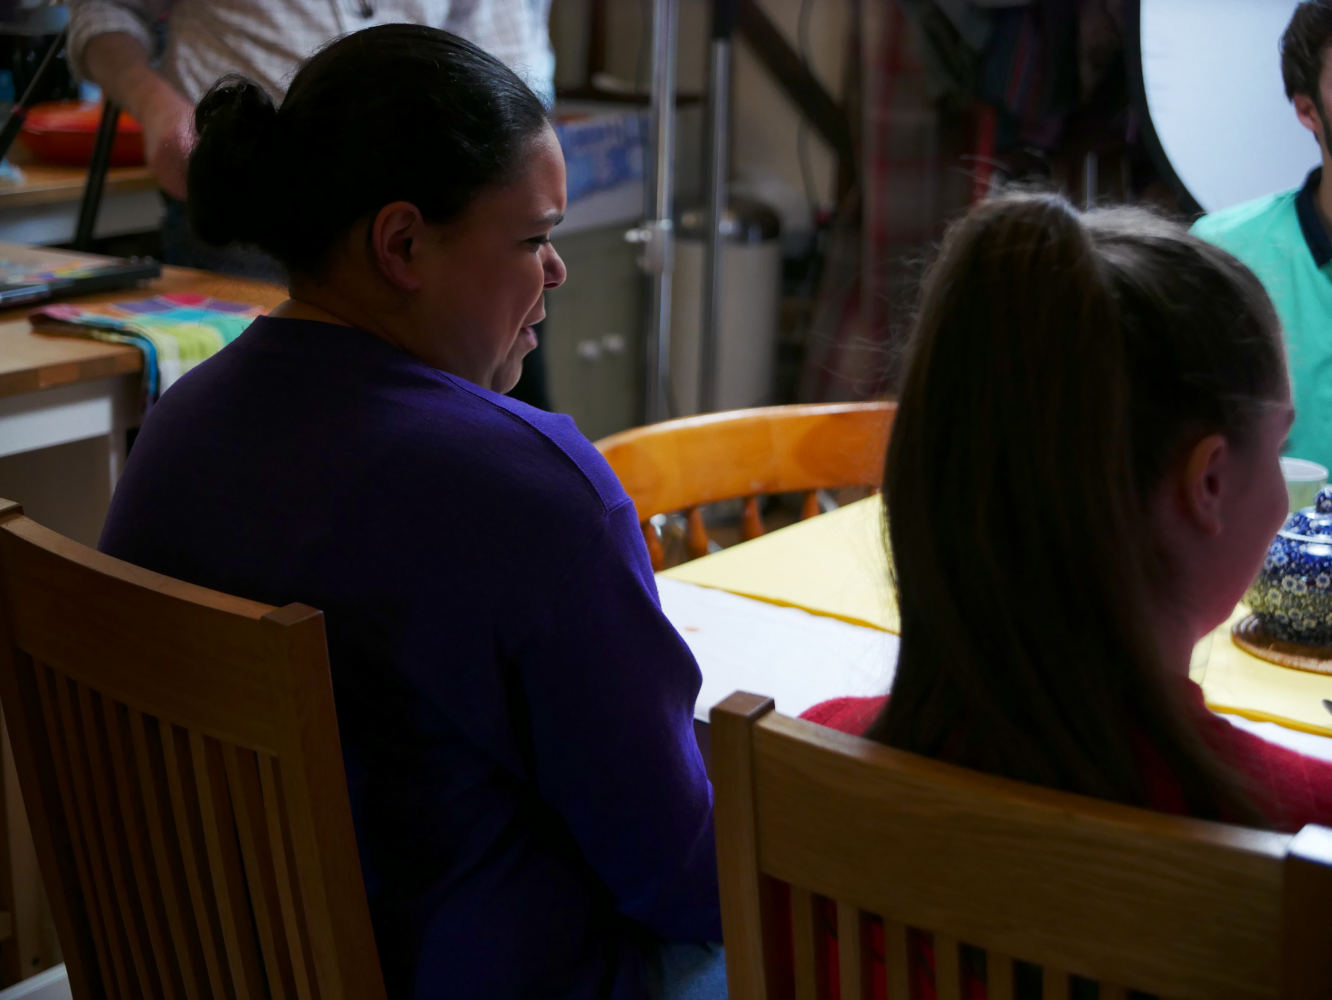 Behind the scenes photo from comedy short film Keep It in the Family of actress Leona Sowe